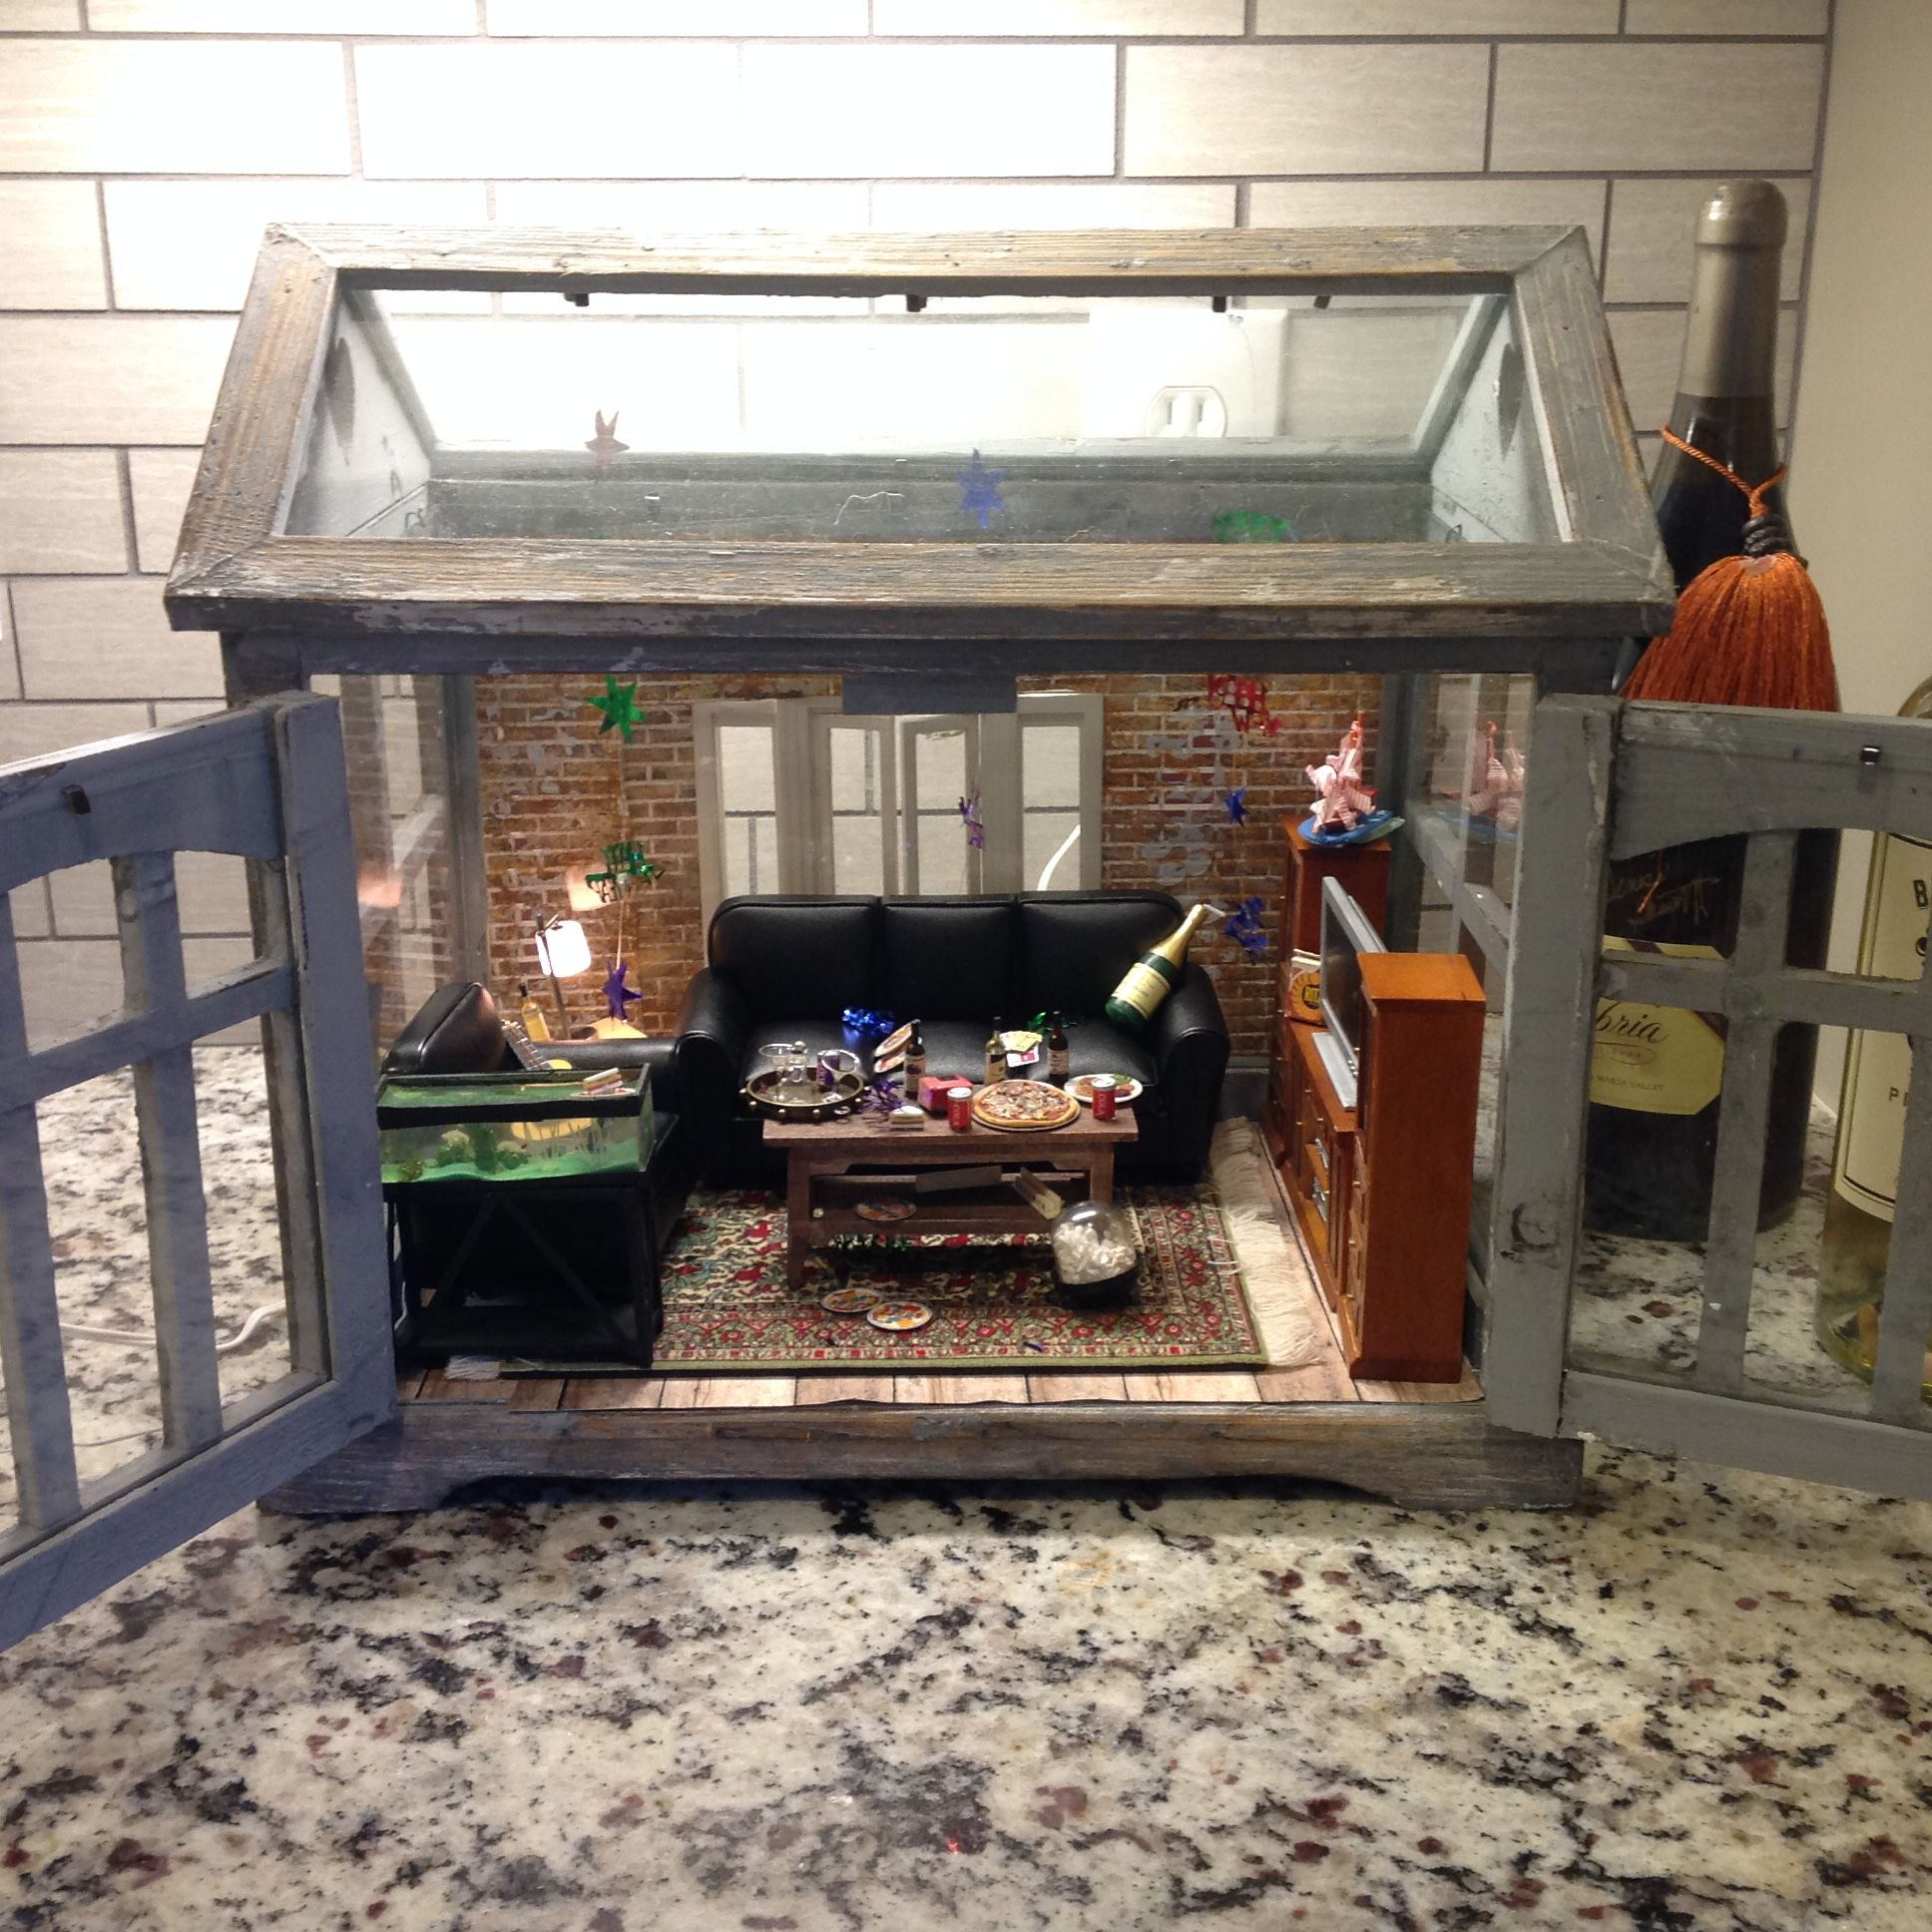 Miniature after-party scene in a Hobby Lobby terrarium for ...